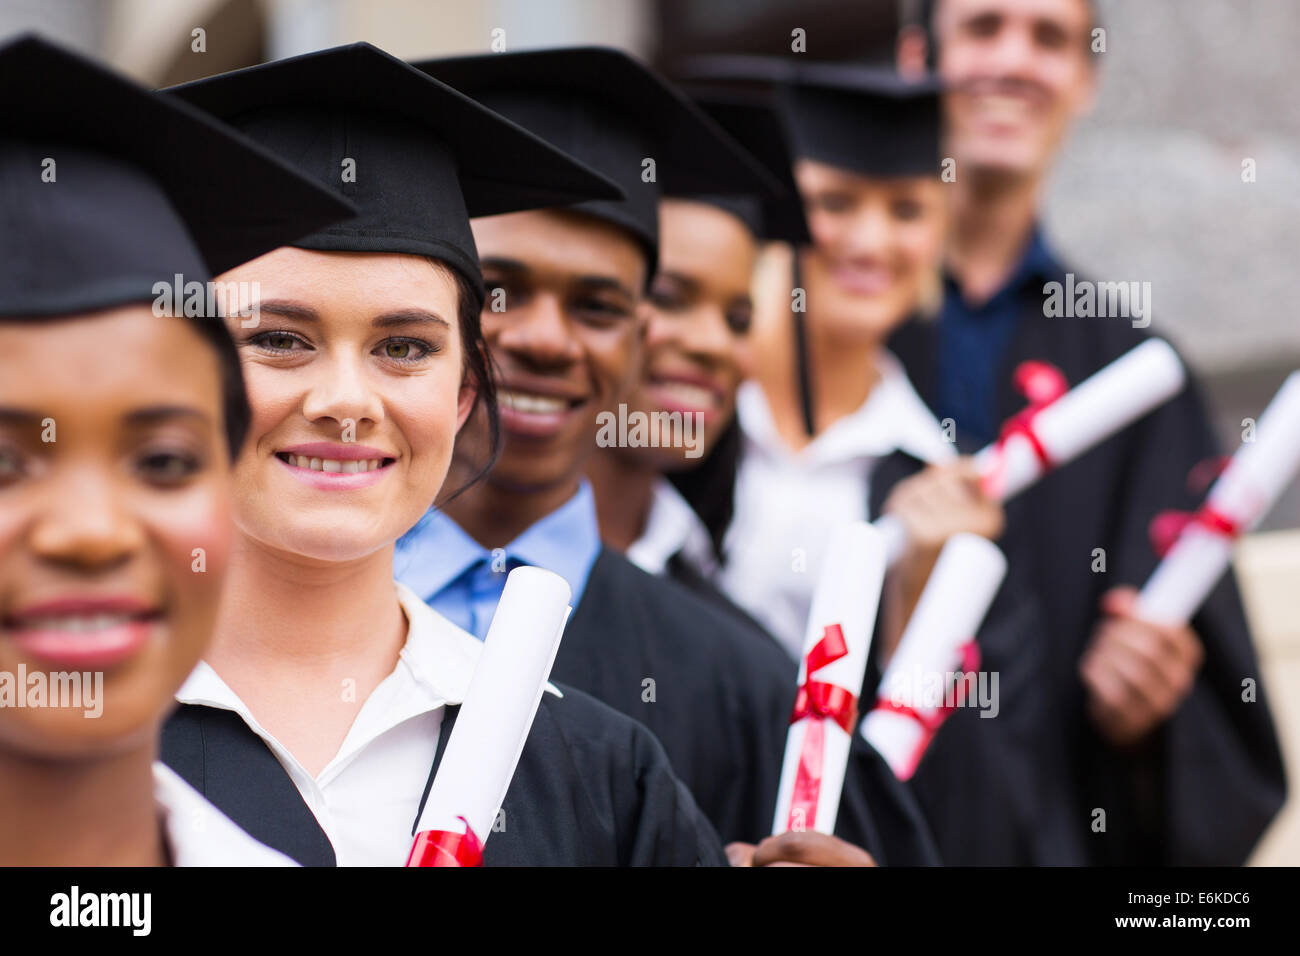 group of happy college graduates standing in a row - Stock Image